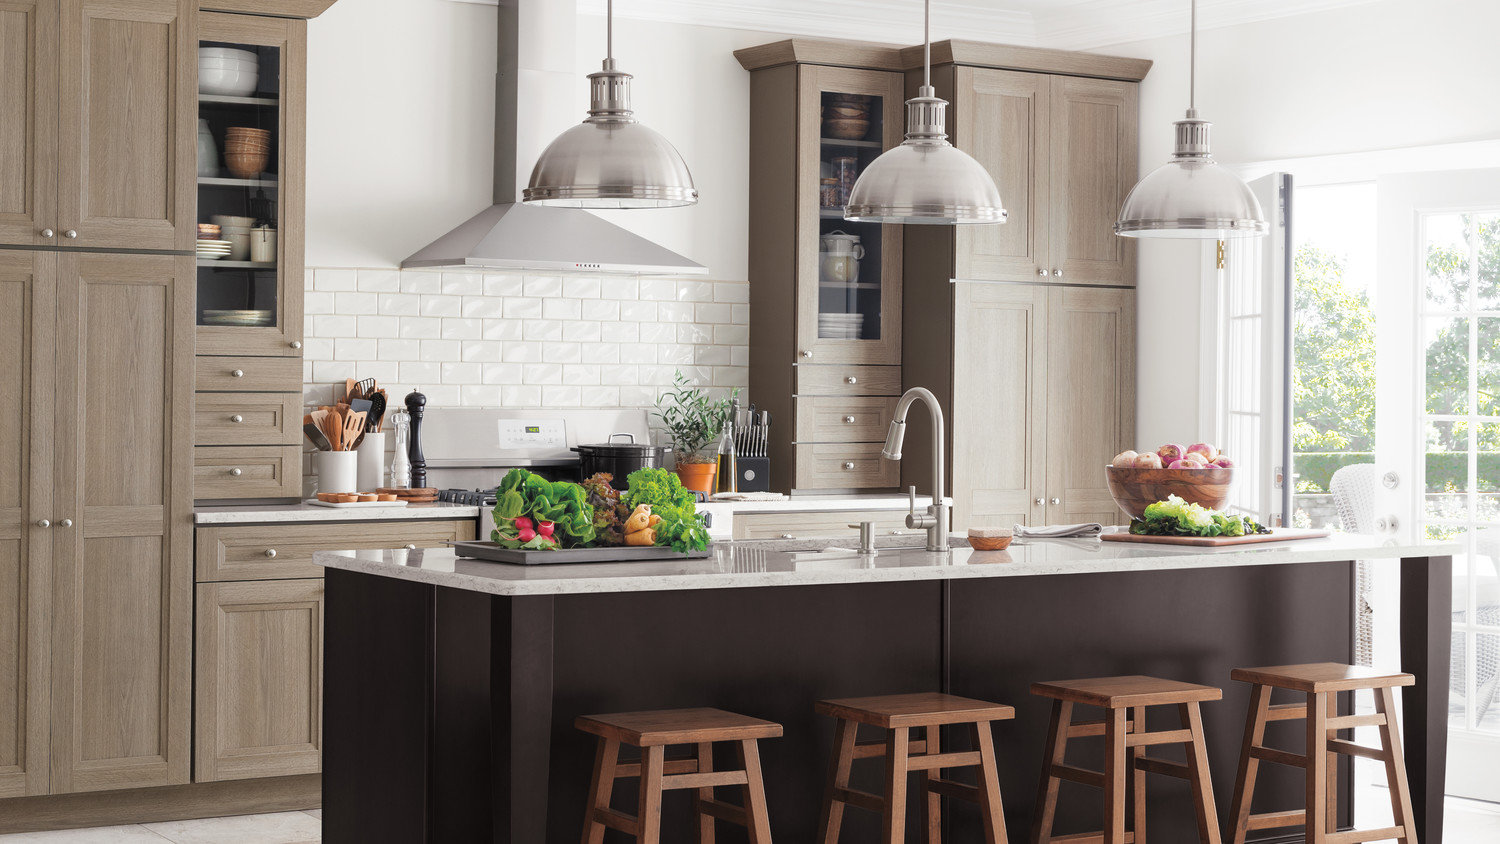 Video: Ask Martha: The Inspiration Behind Marthau0027s Kitchens | Martha Stewart